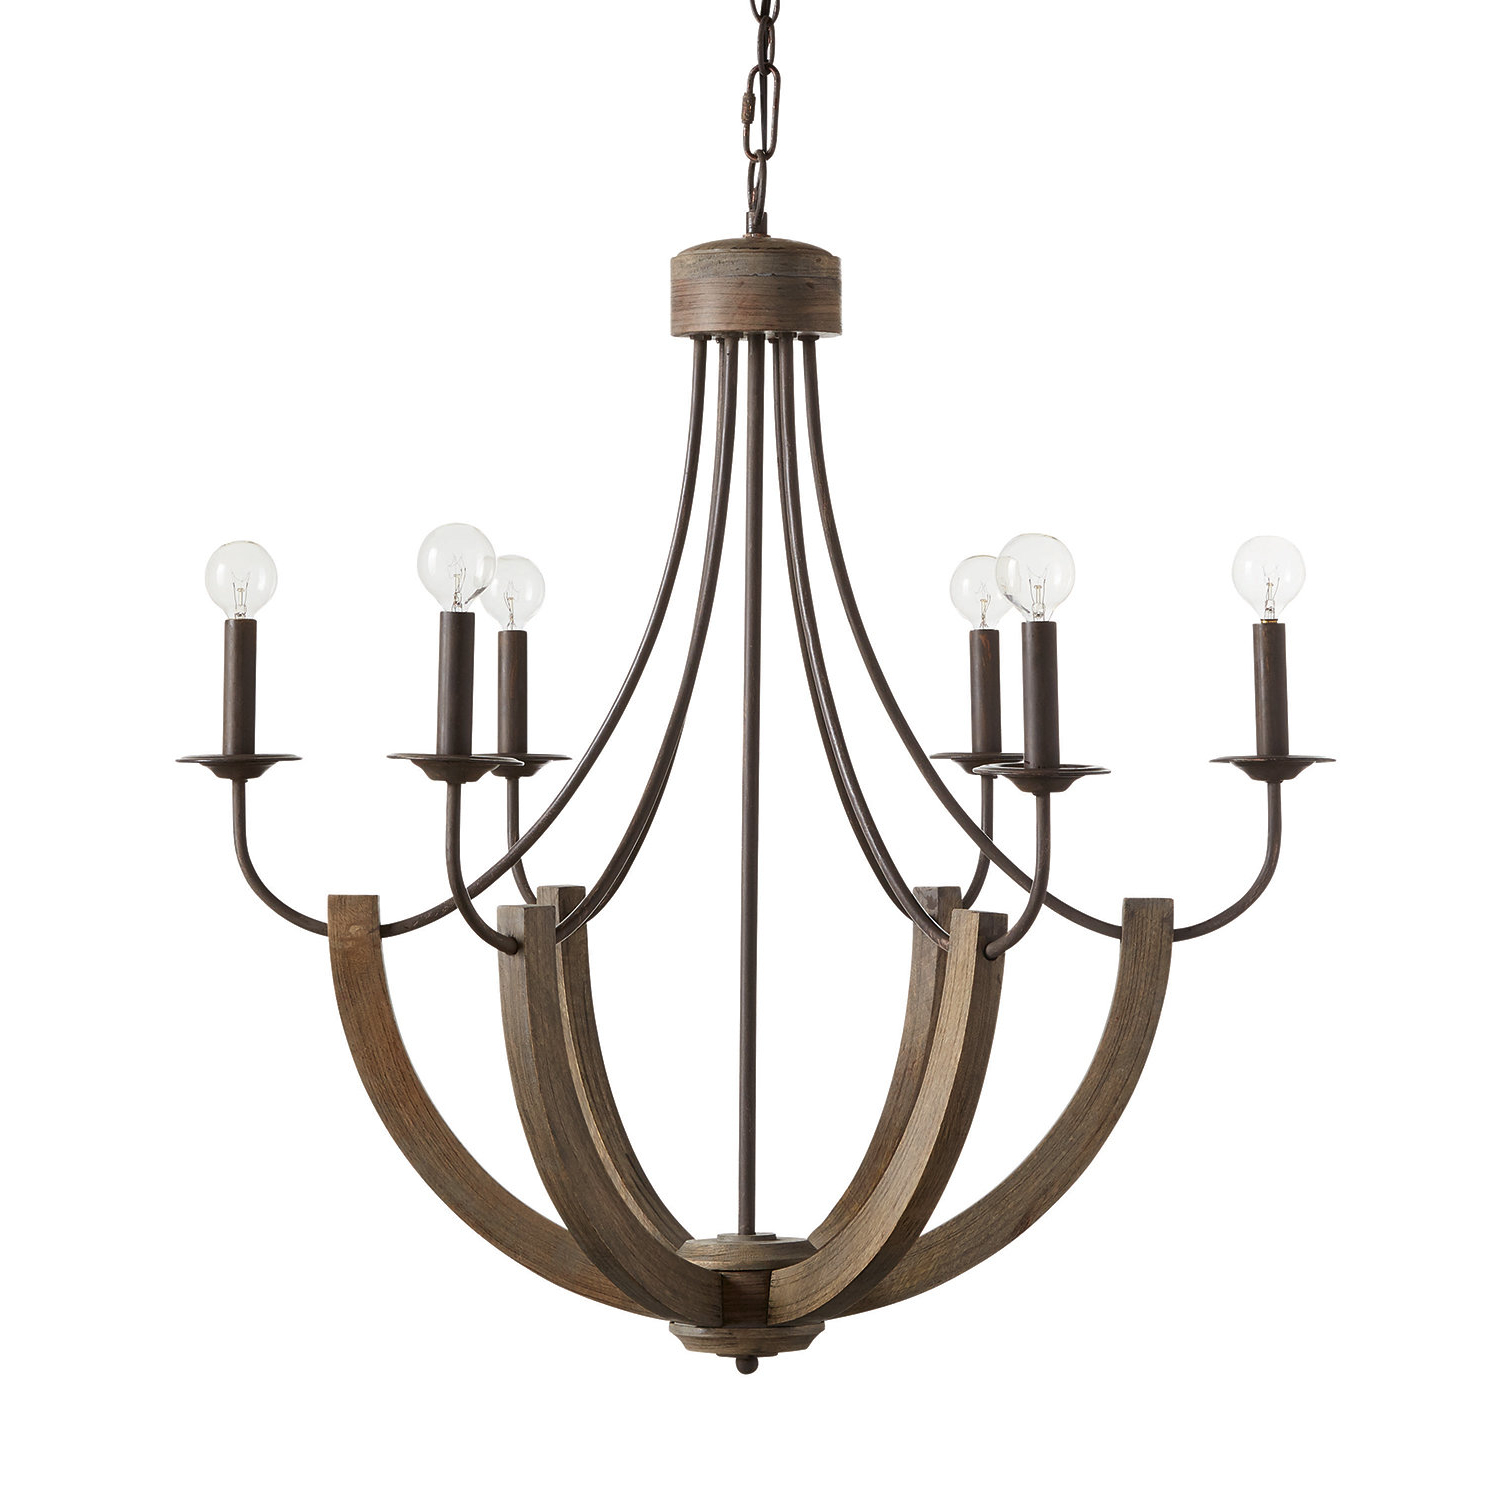 Most Current Verona 6 Light Candle Style Chandelier Pertaining To Armande Candle Style Chandeliers (View 17 of 25)